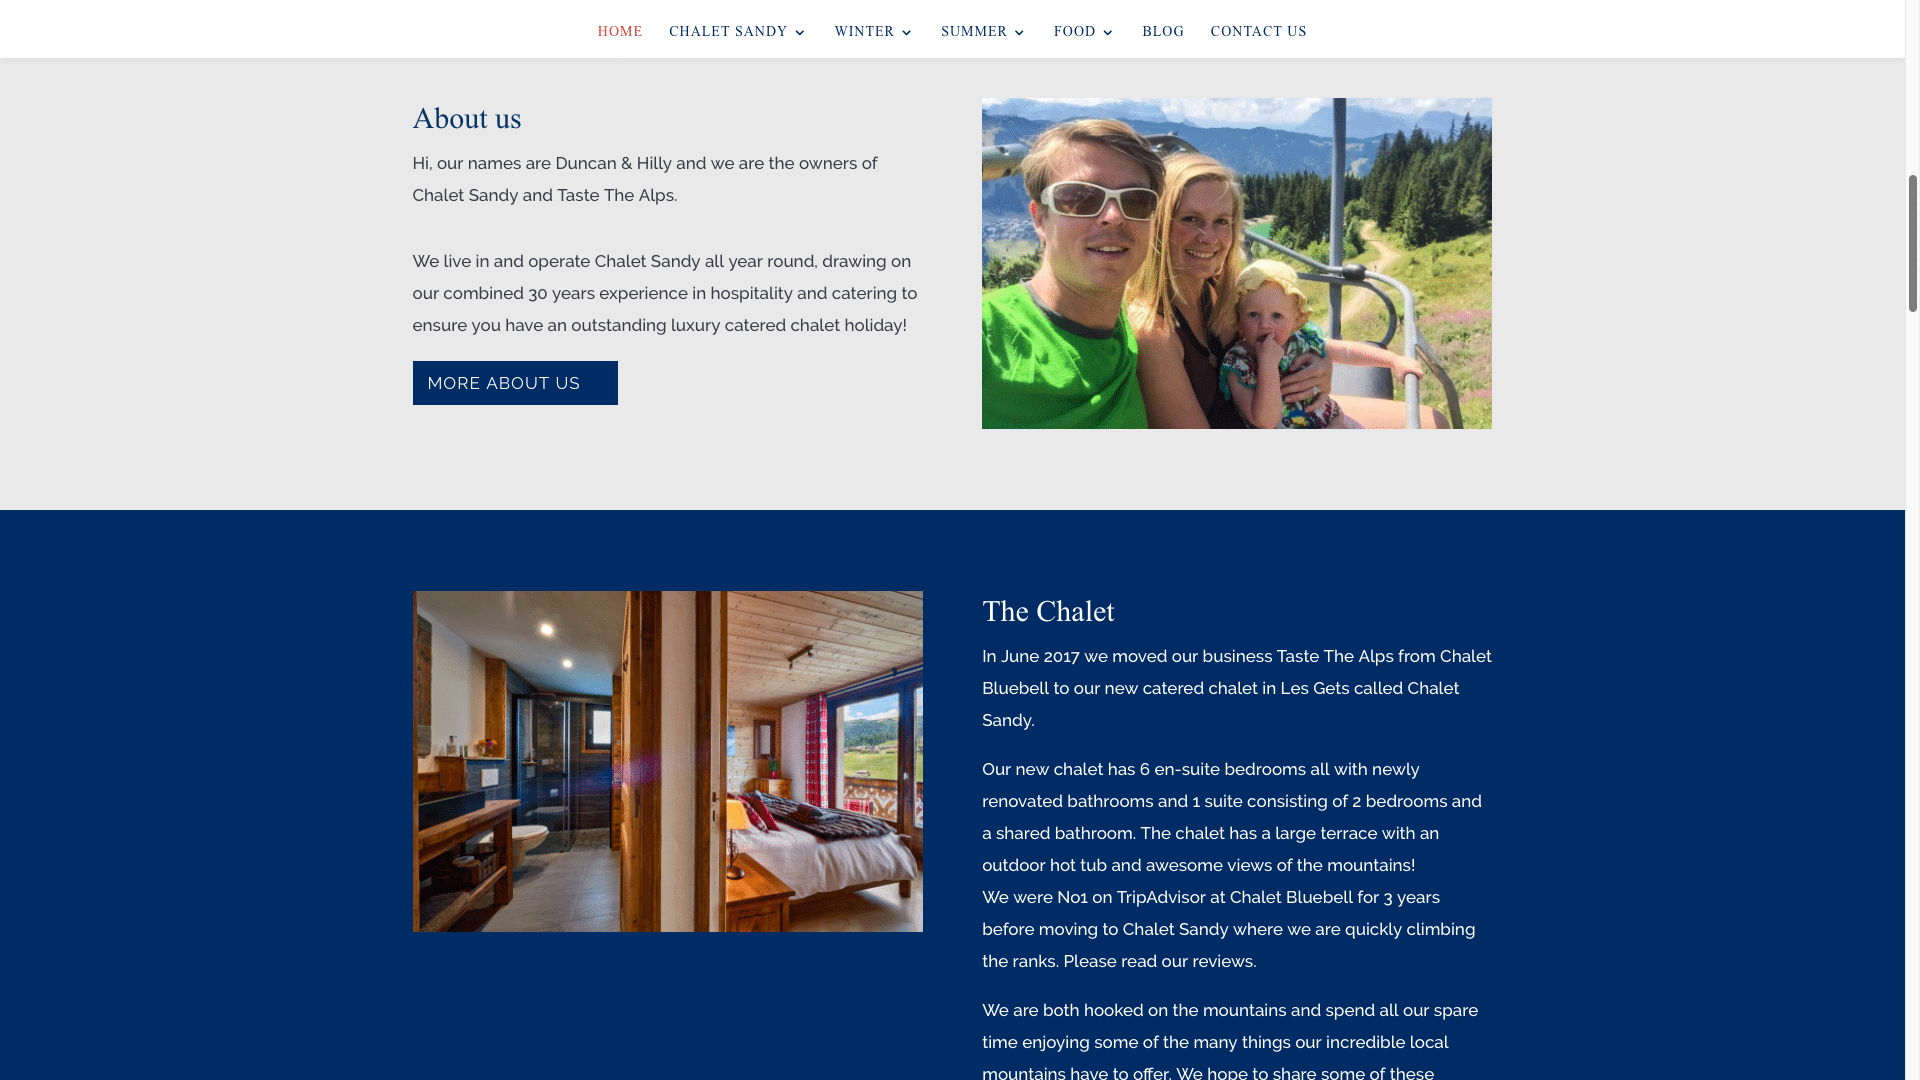 Screen Shot 2017 08 30 at 5.15.37 pm 1 - Website design for ski chalet company